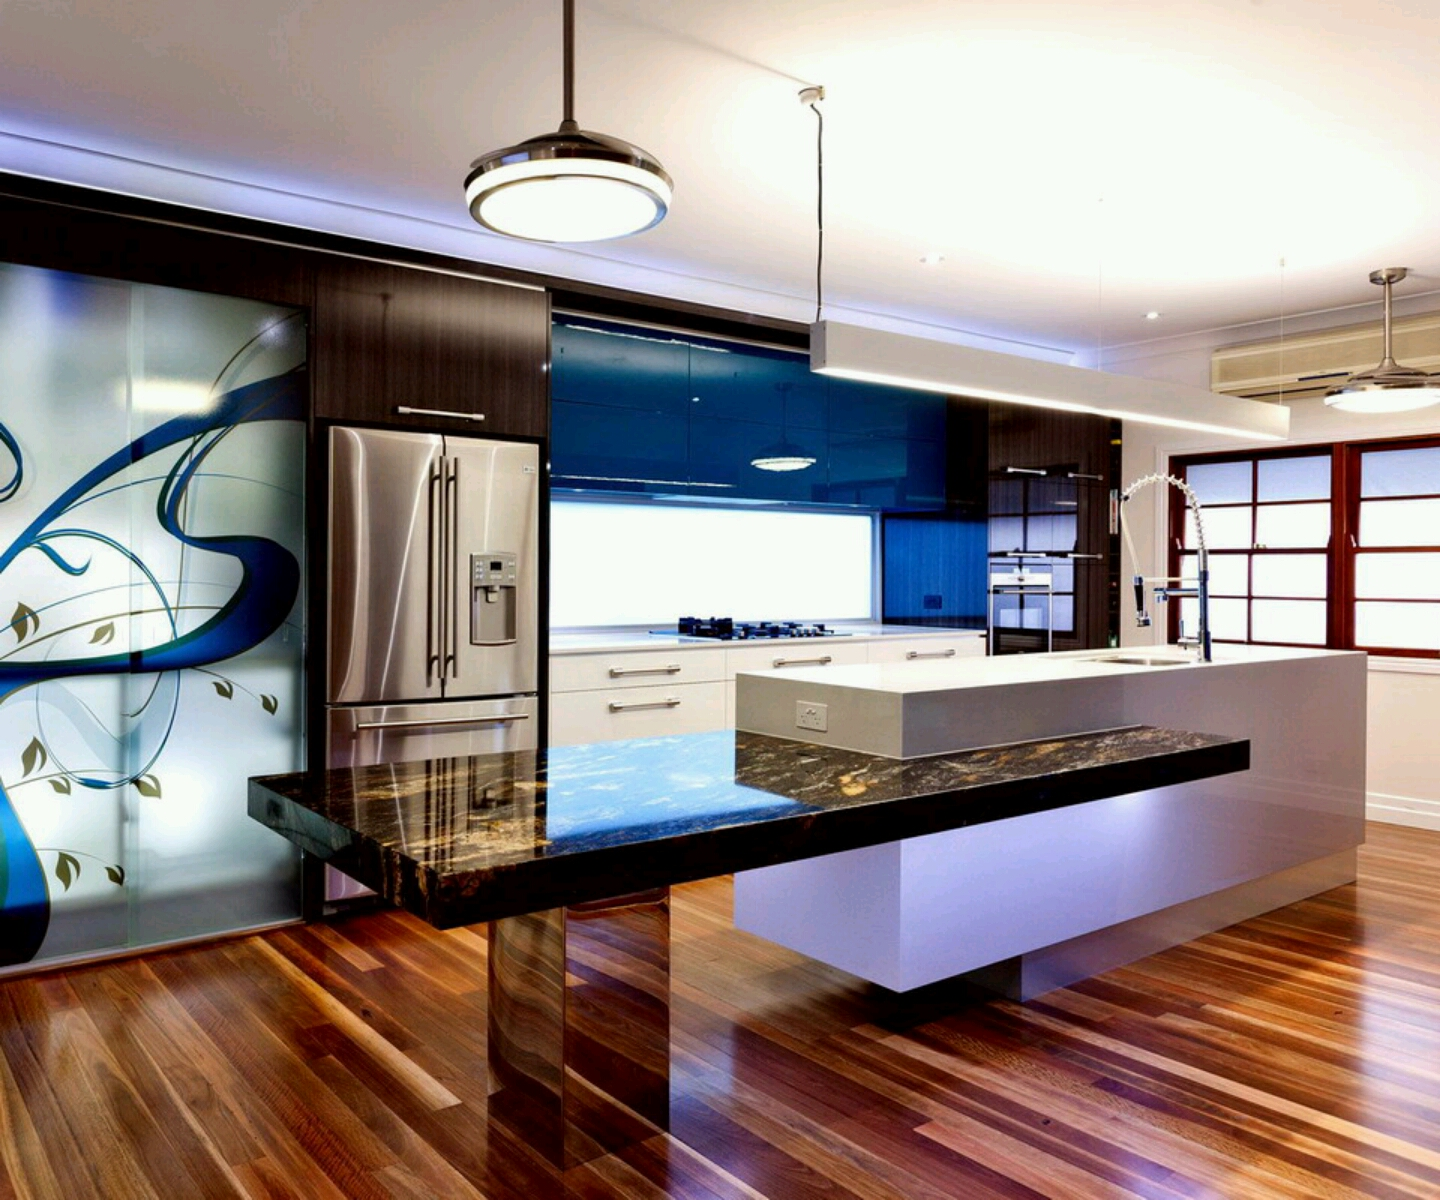 Ultra modern kitchen designs ideas new home designs for Kitchen inspiration ideas